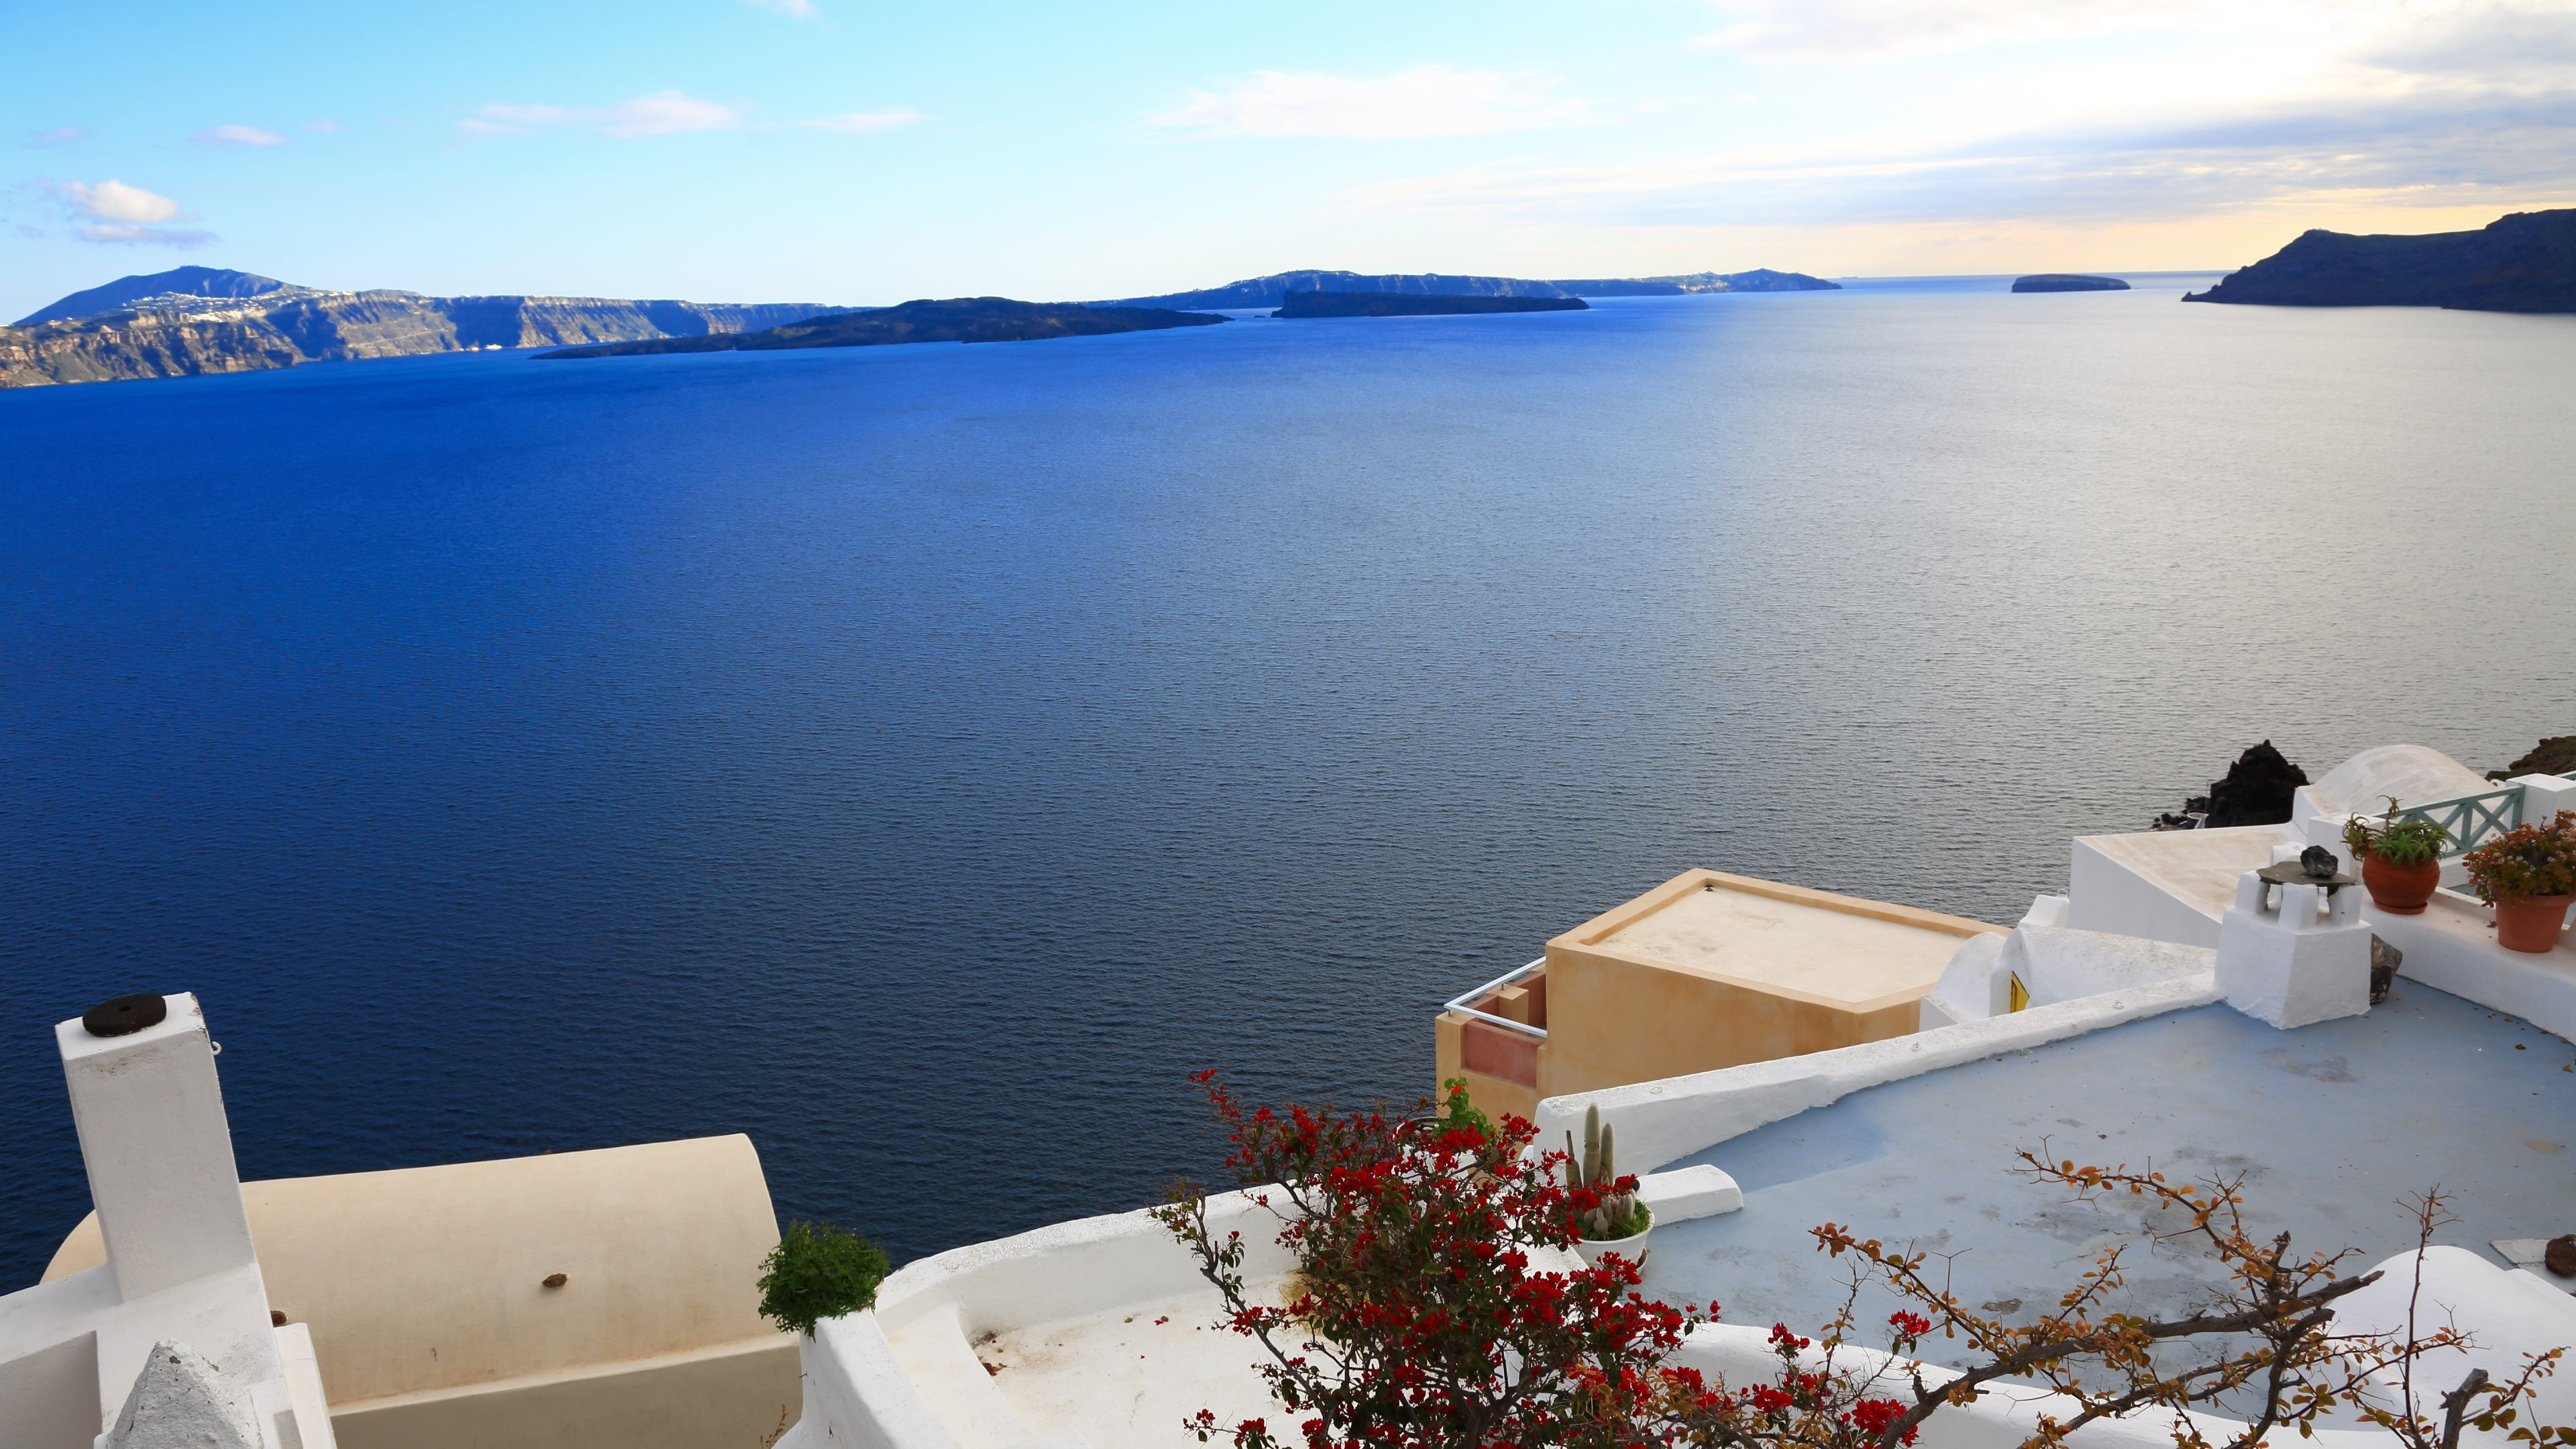 62 Santorini HD Wallpapers Background Images 3840x2160